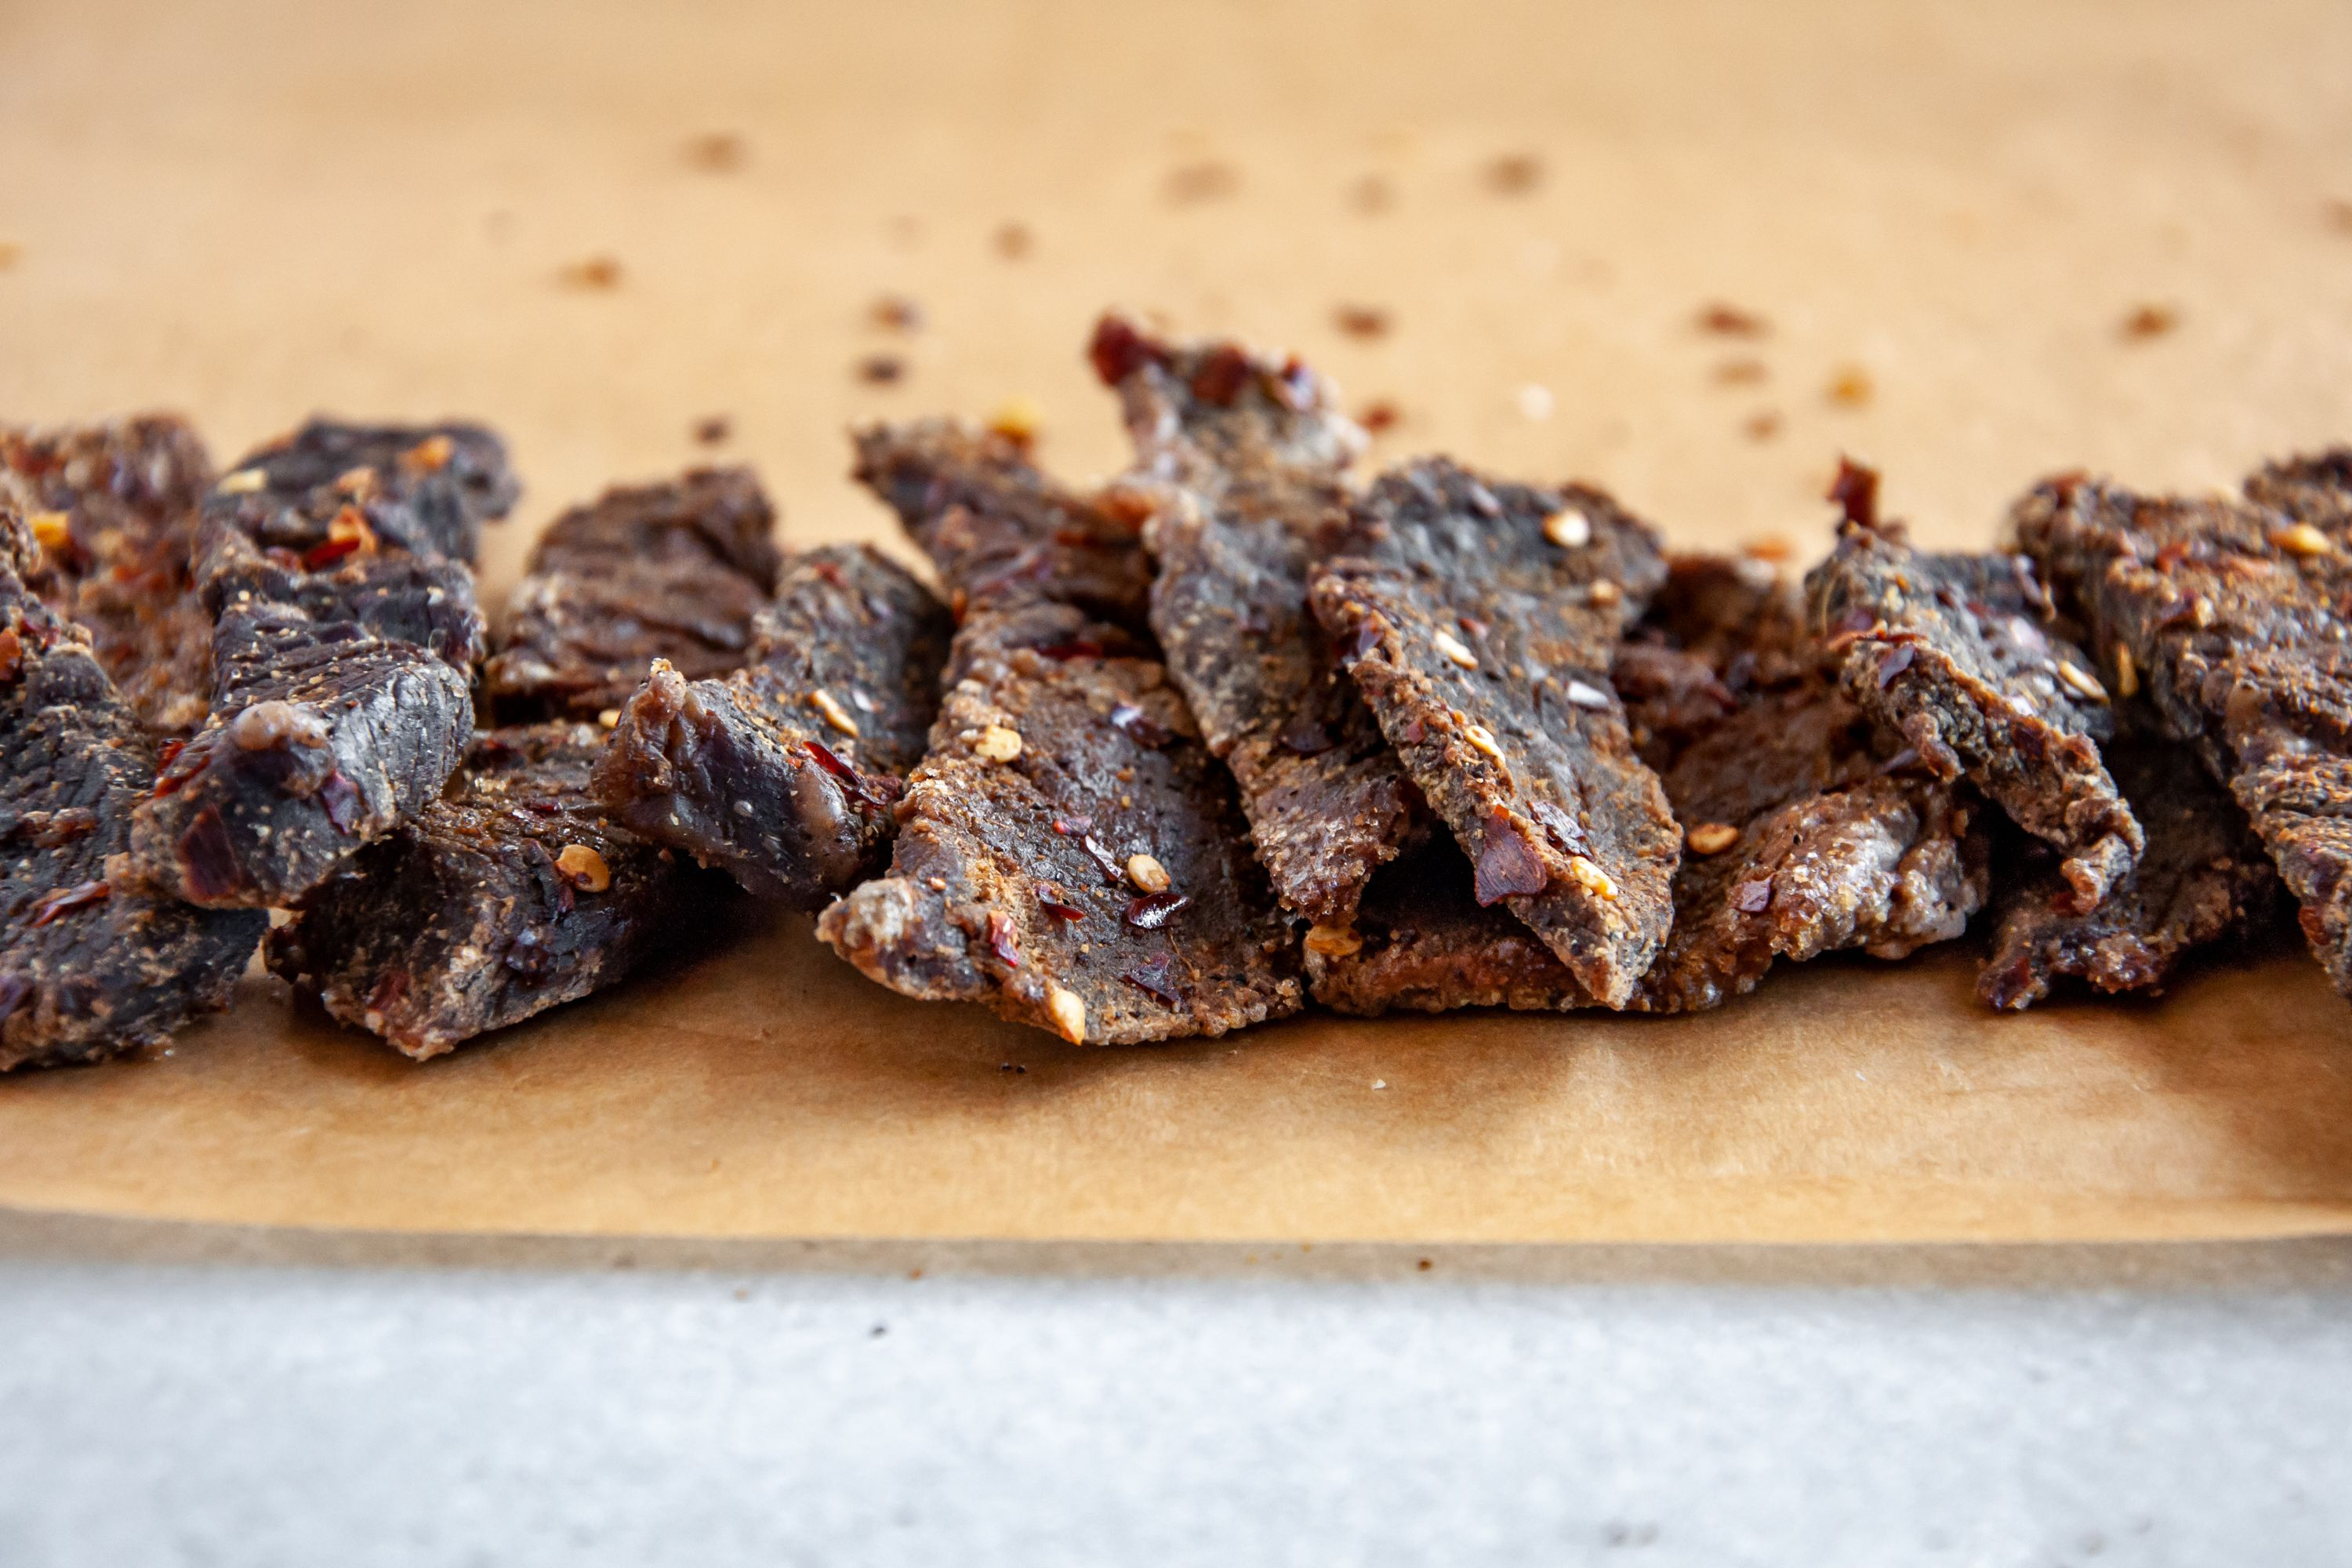 Homemade Beef Jerky Is the Ultimate Meat-Lovers Snack